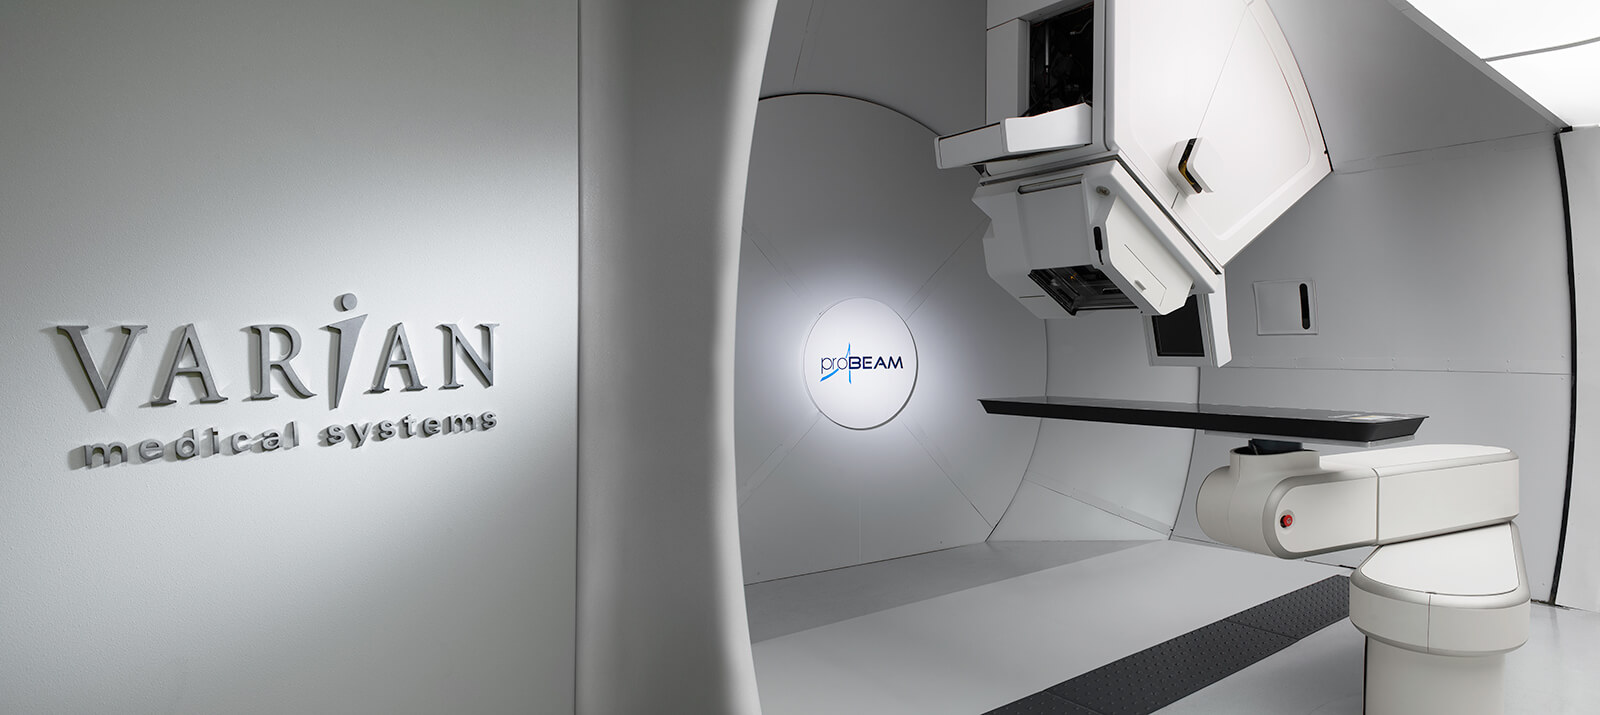 Proton Therapy Scanning Machine